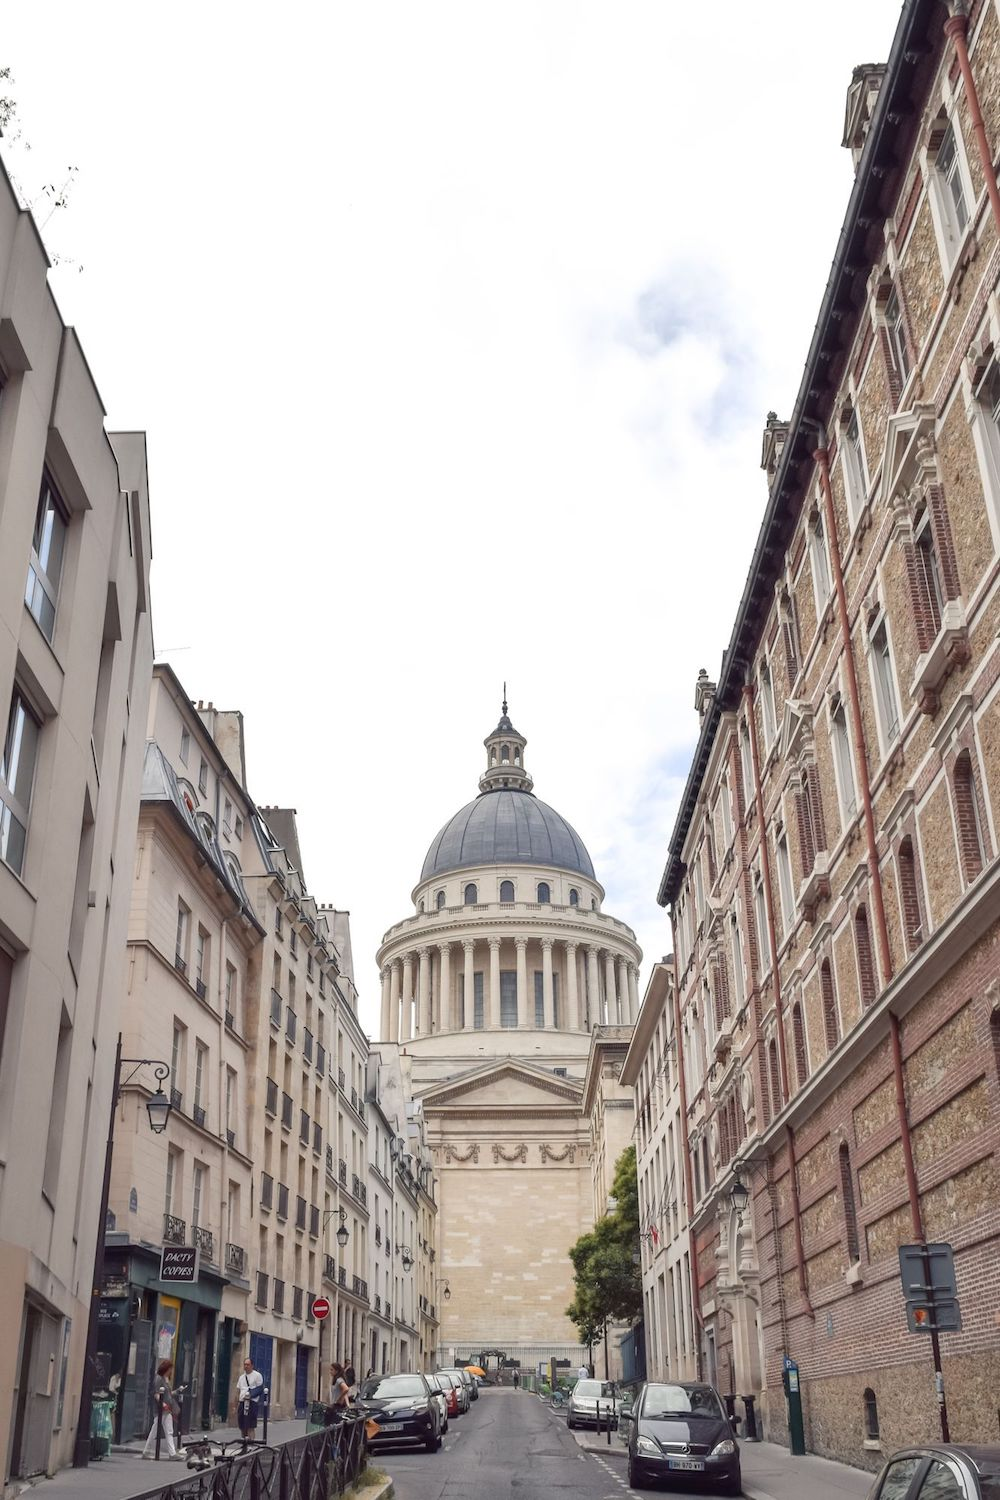 View of the Panthéon from Rue Valette